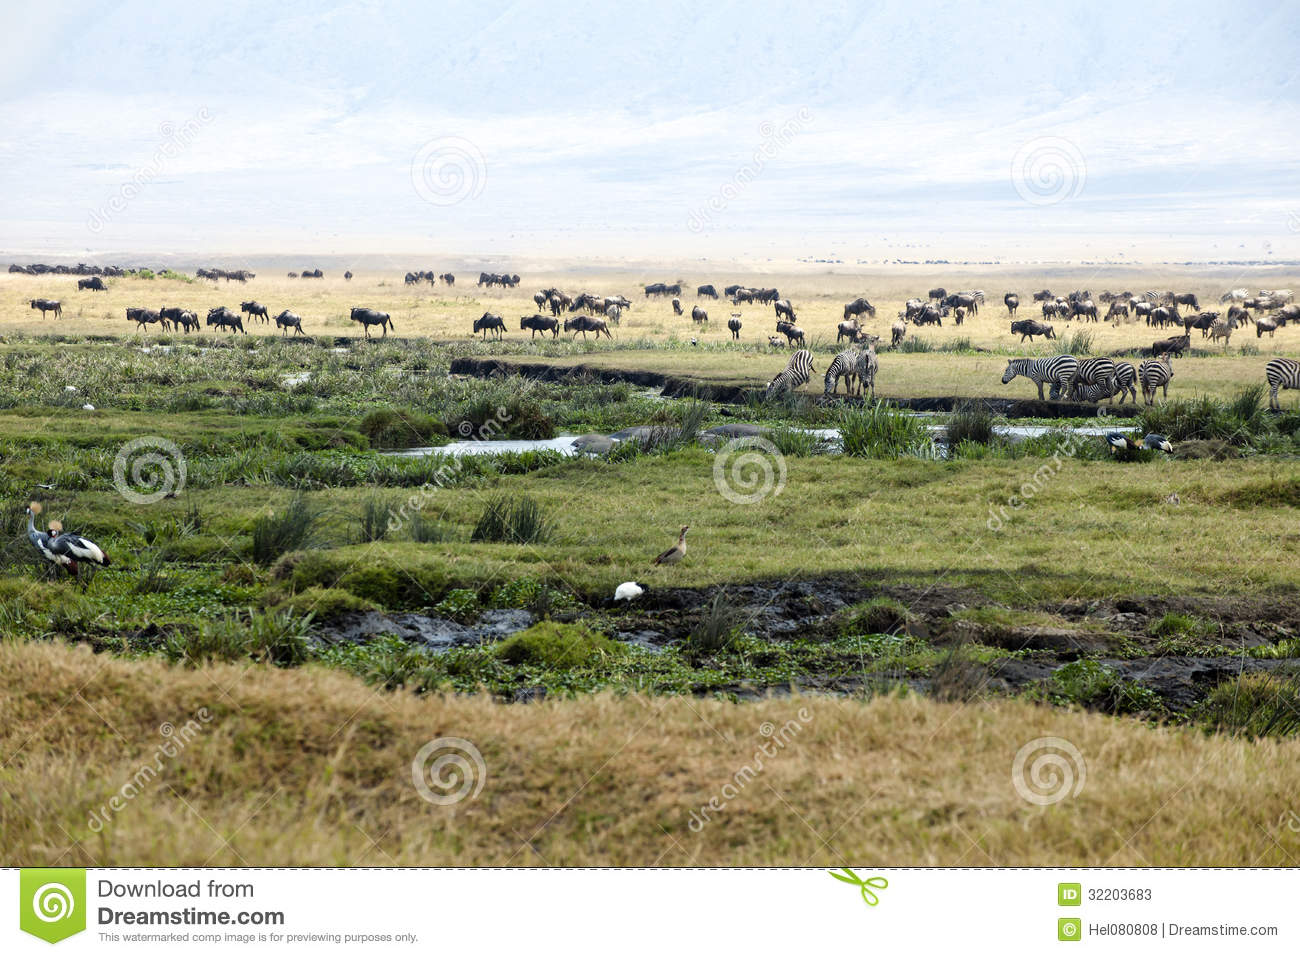 Zebras, Gnus, Hippos, Birds in Ngorongoro Crater